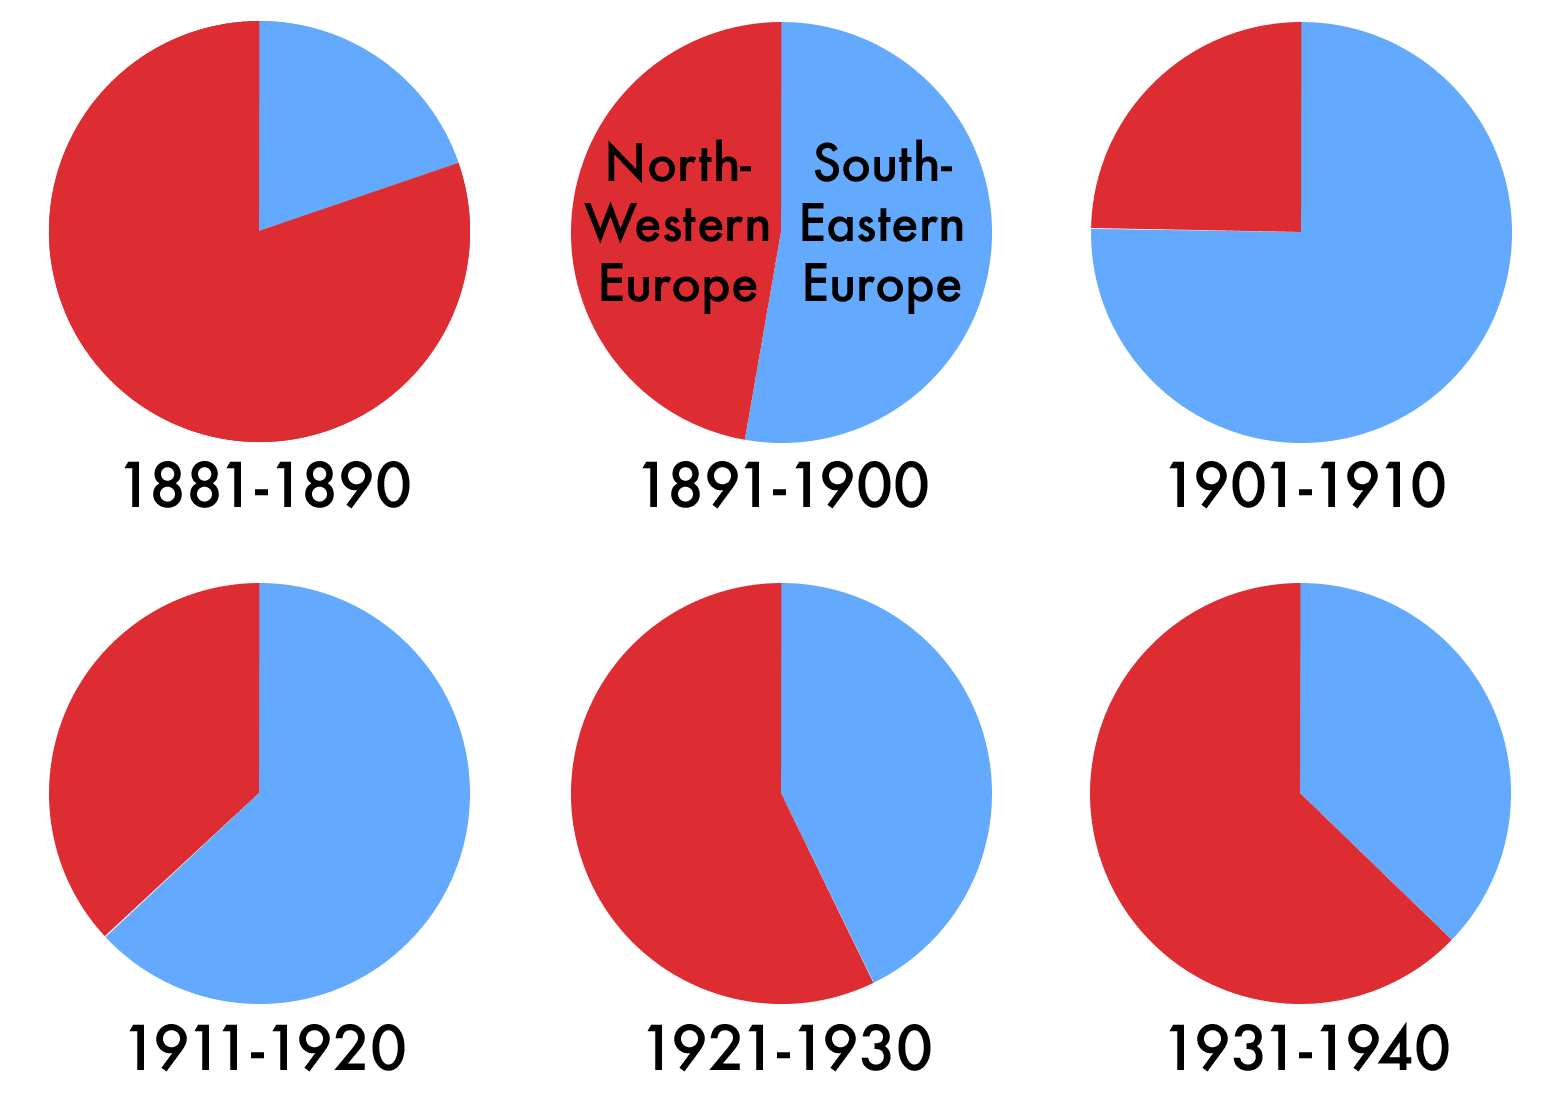 Relative proportions of immigrants from Northwestern Europe (red) and Southeastern Europe (blue) in the decades before and after the immigration restriction legislation.